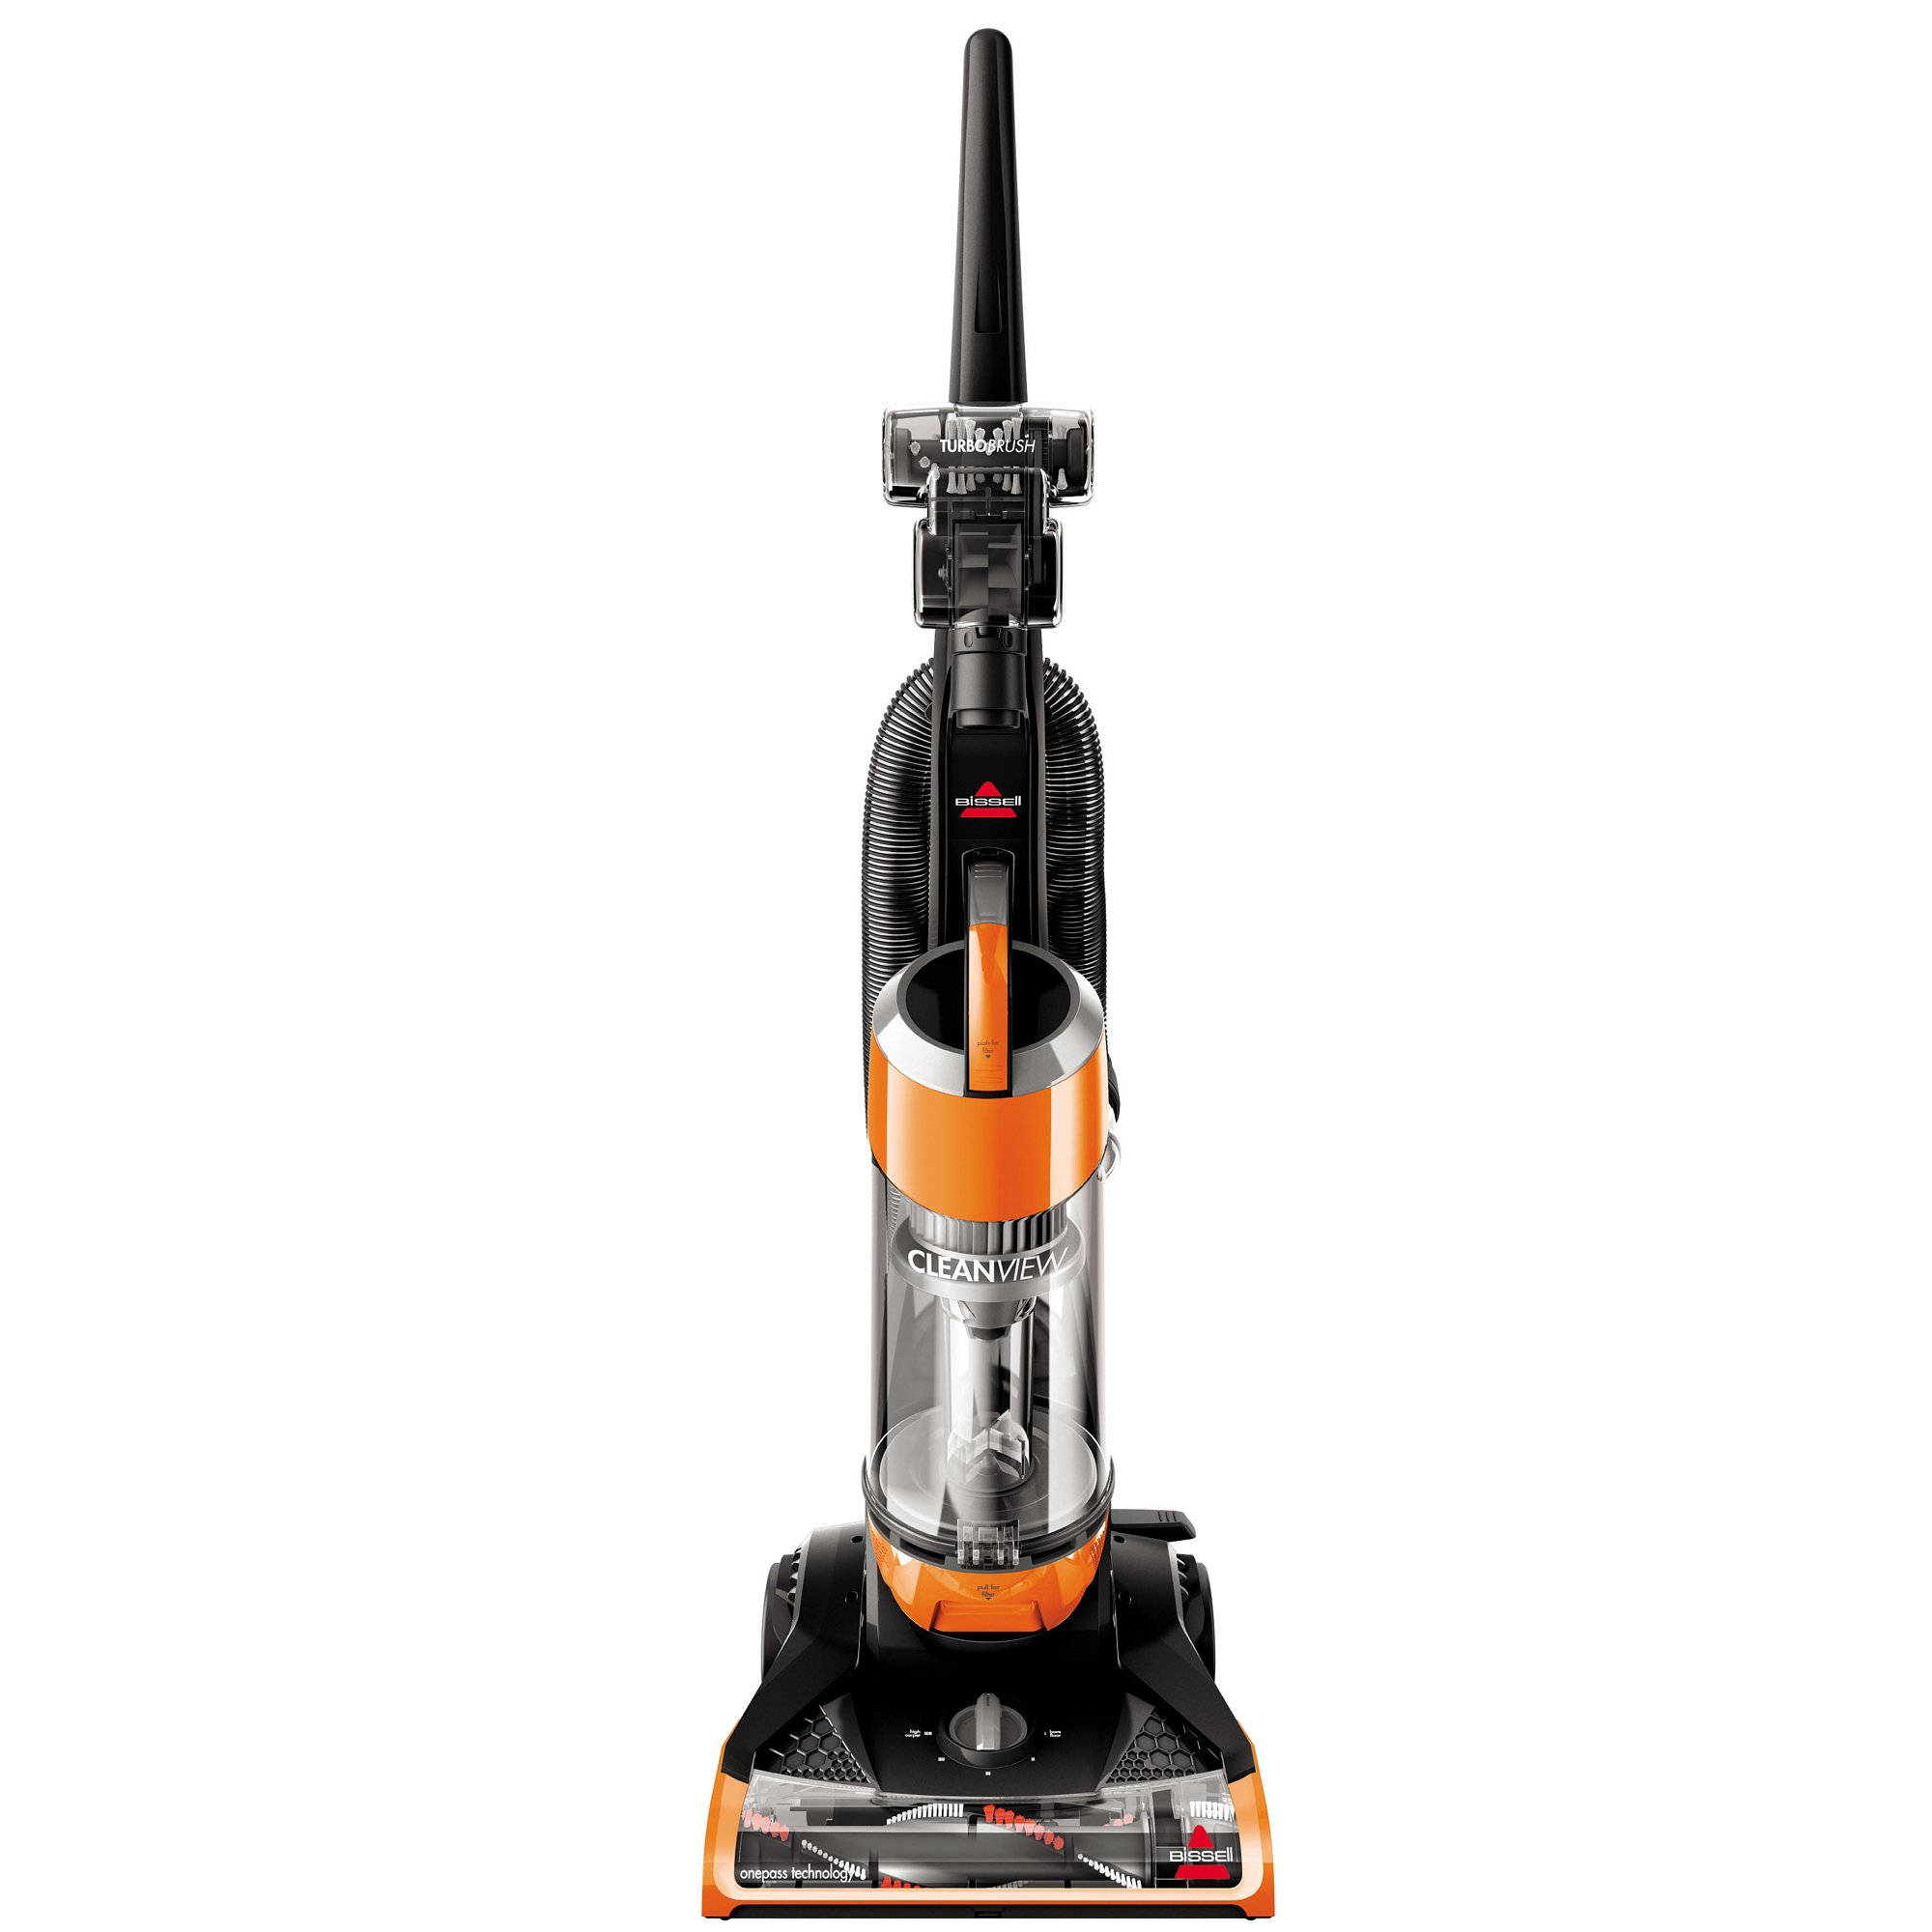 Bissell Cleanview Upright Bagless Vacuum Cleaner, Orange, 1831 by Bissell